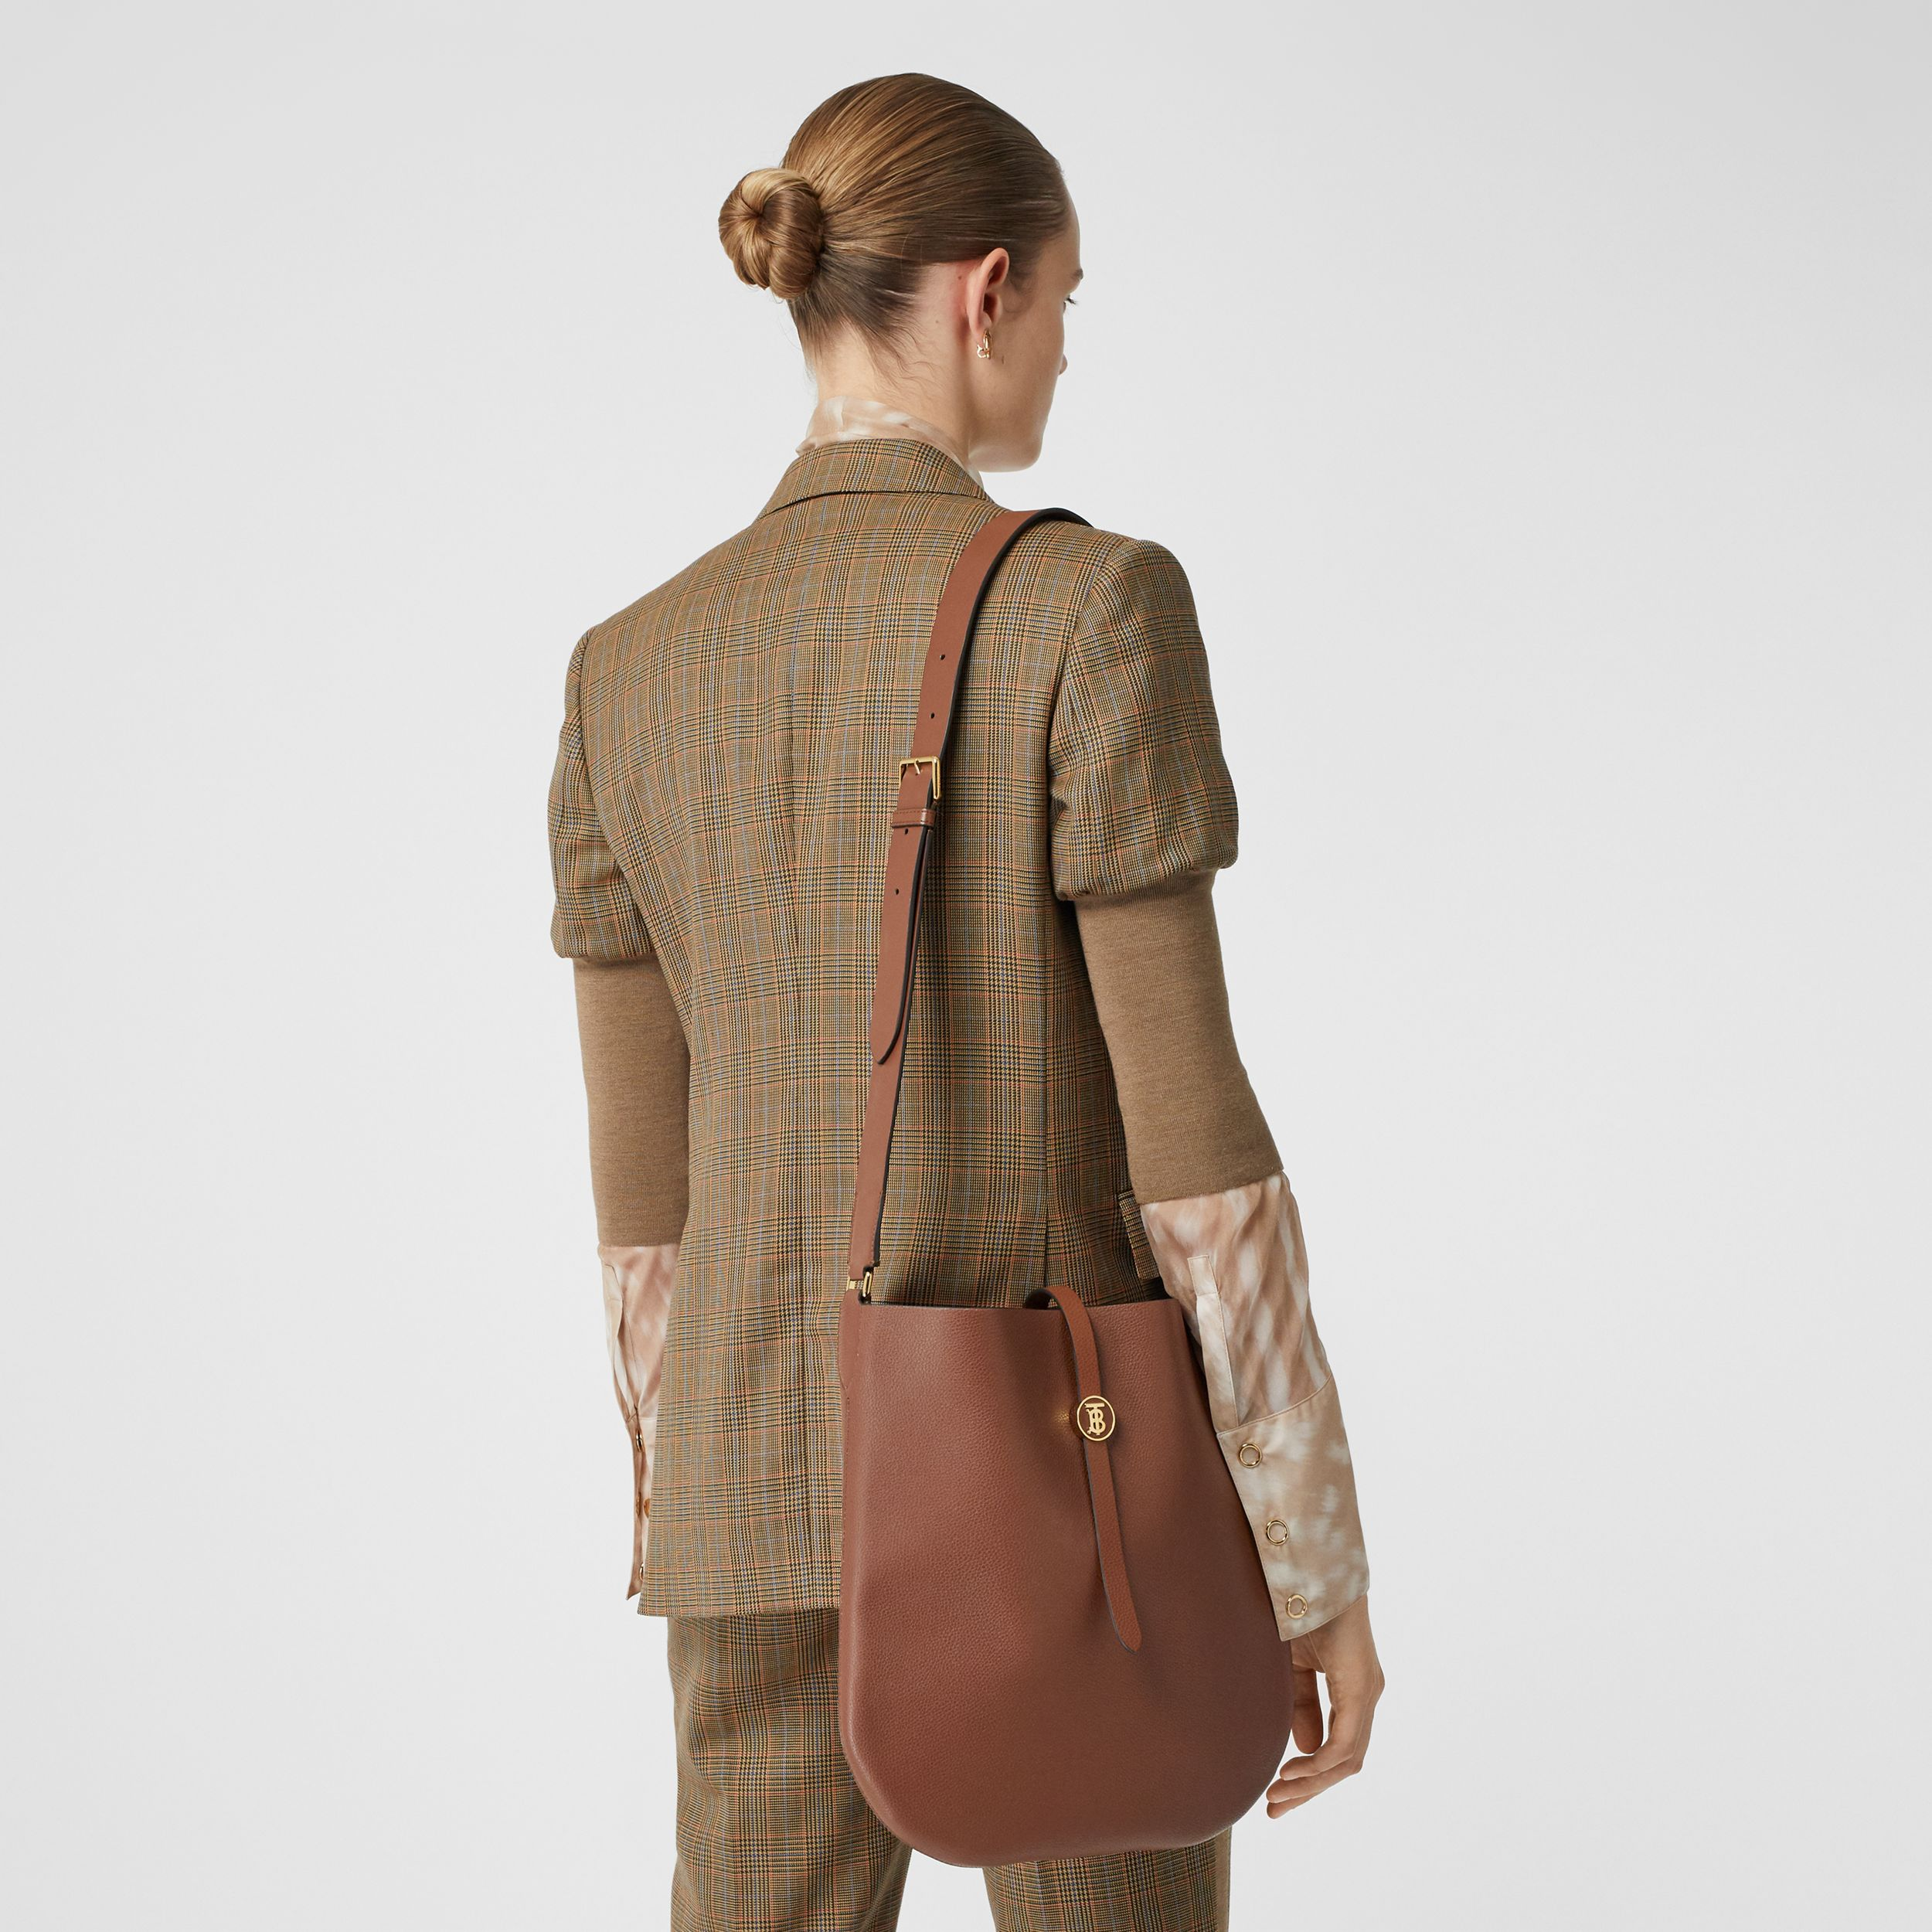 Grainy Leather Anne Bag in Tan - Women | Burberry - 3